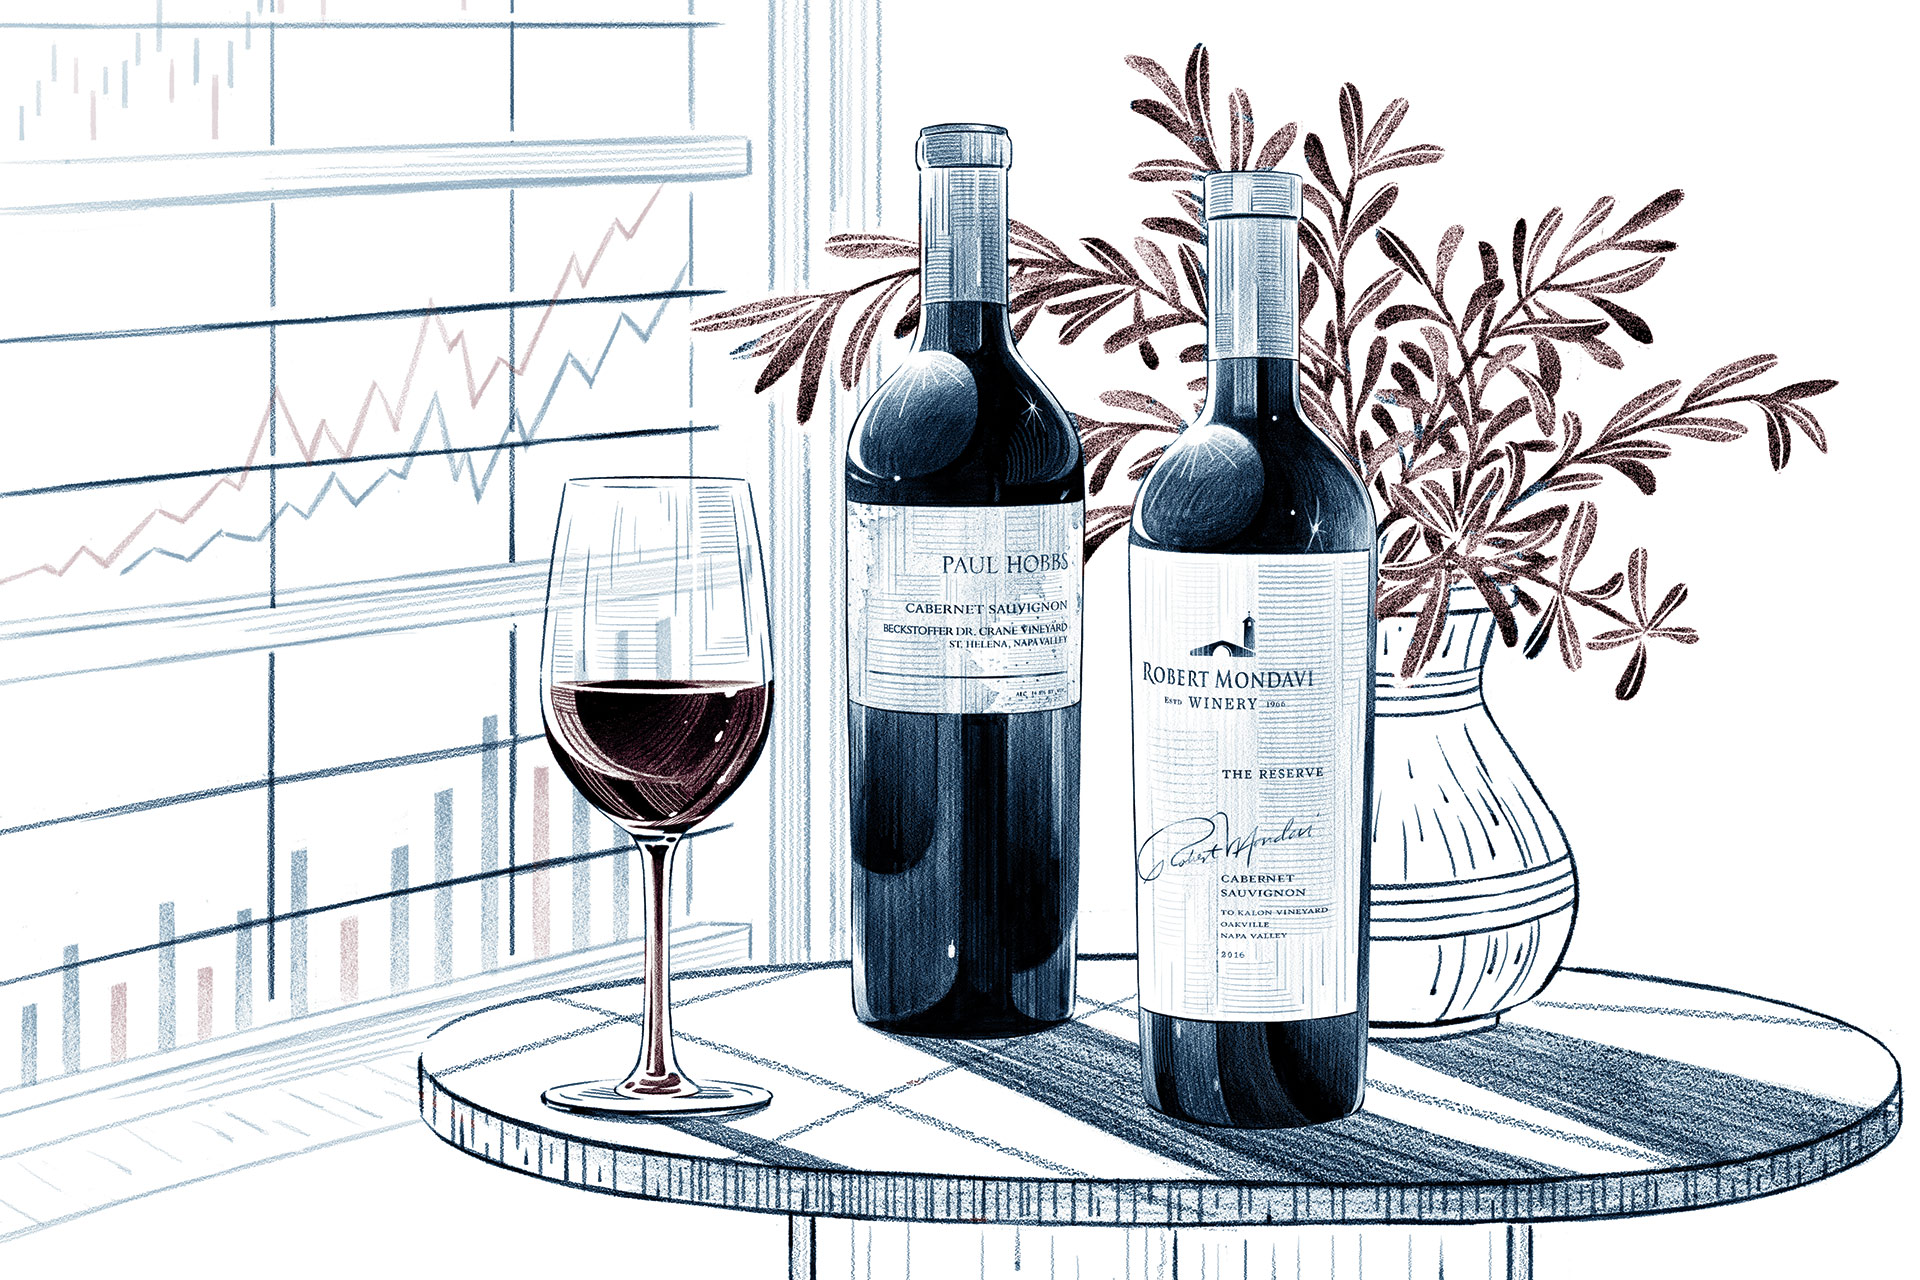 Illustration of a glass of wine next to two bottles of wine